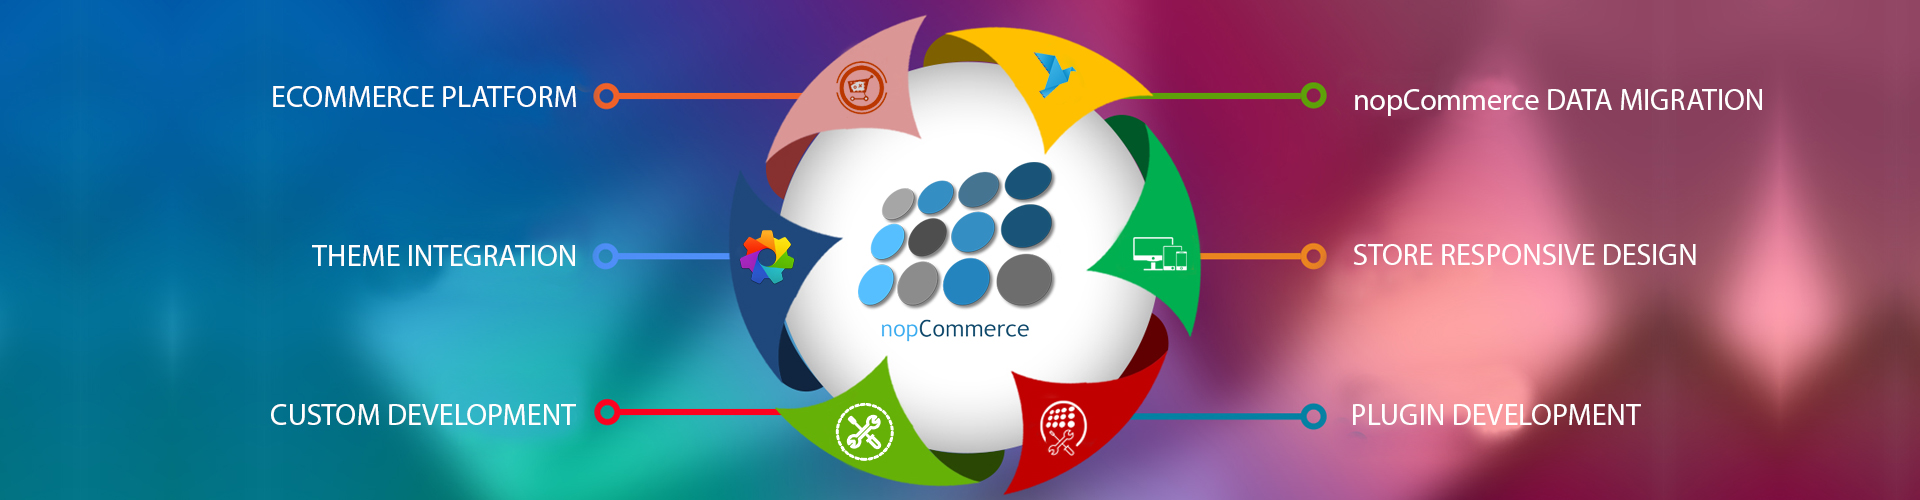 nopCommerce Development Services - Sigma Solve Inc.